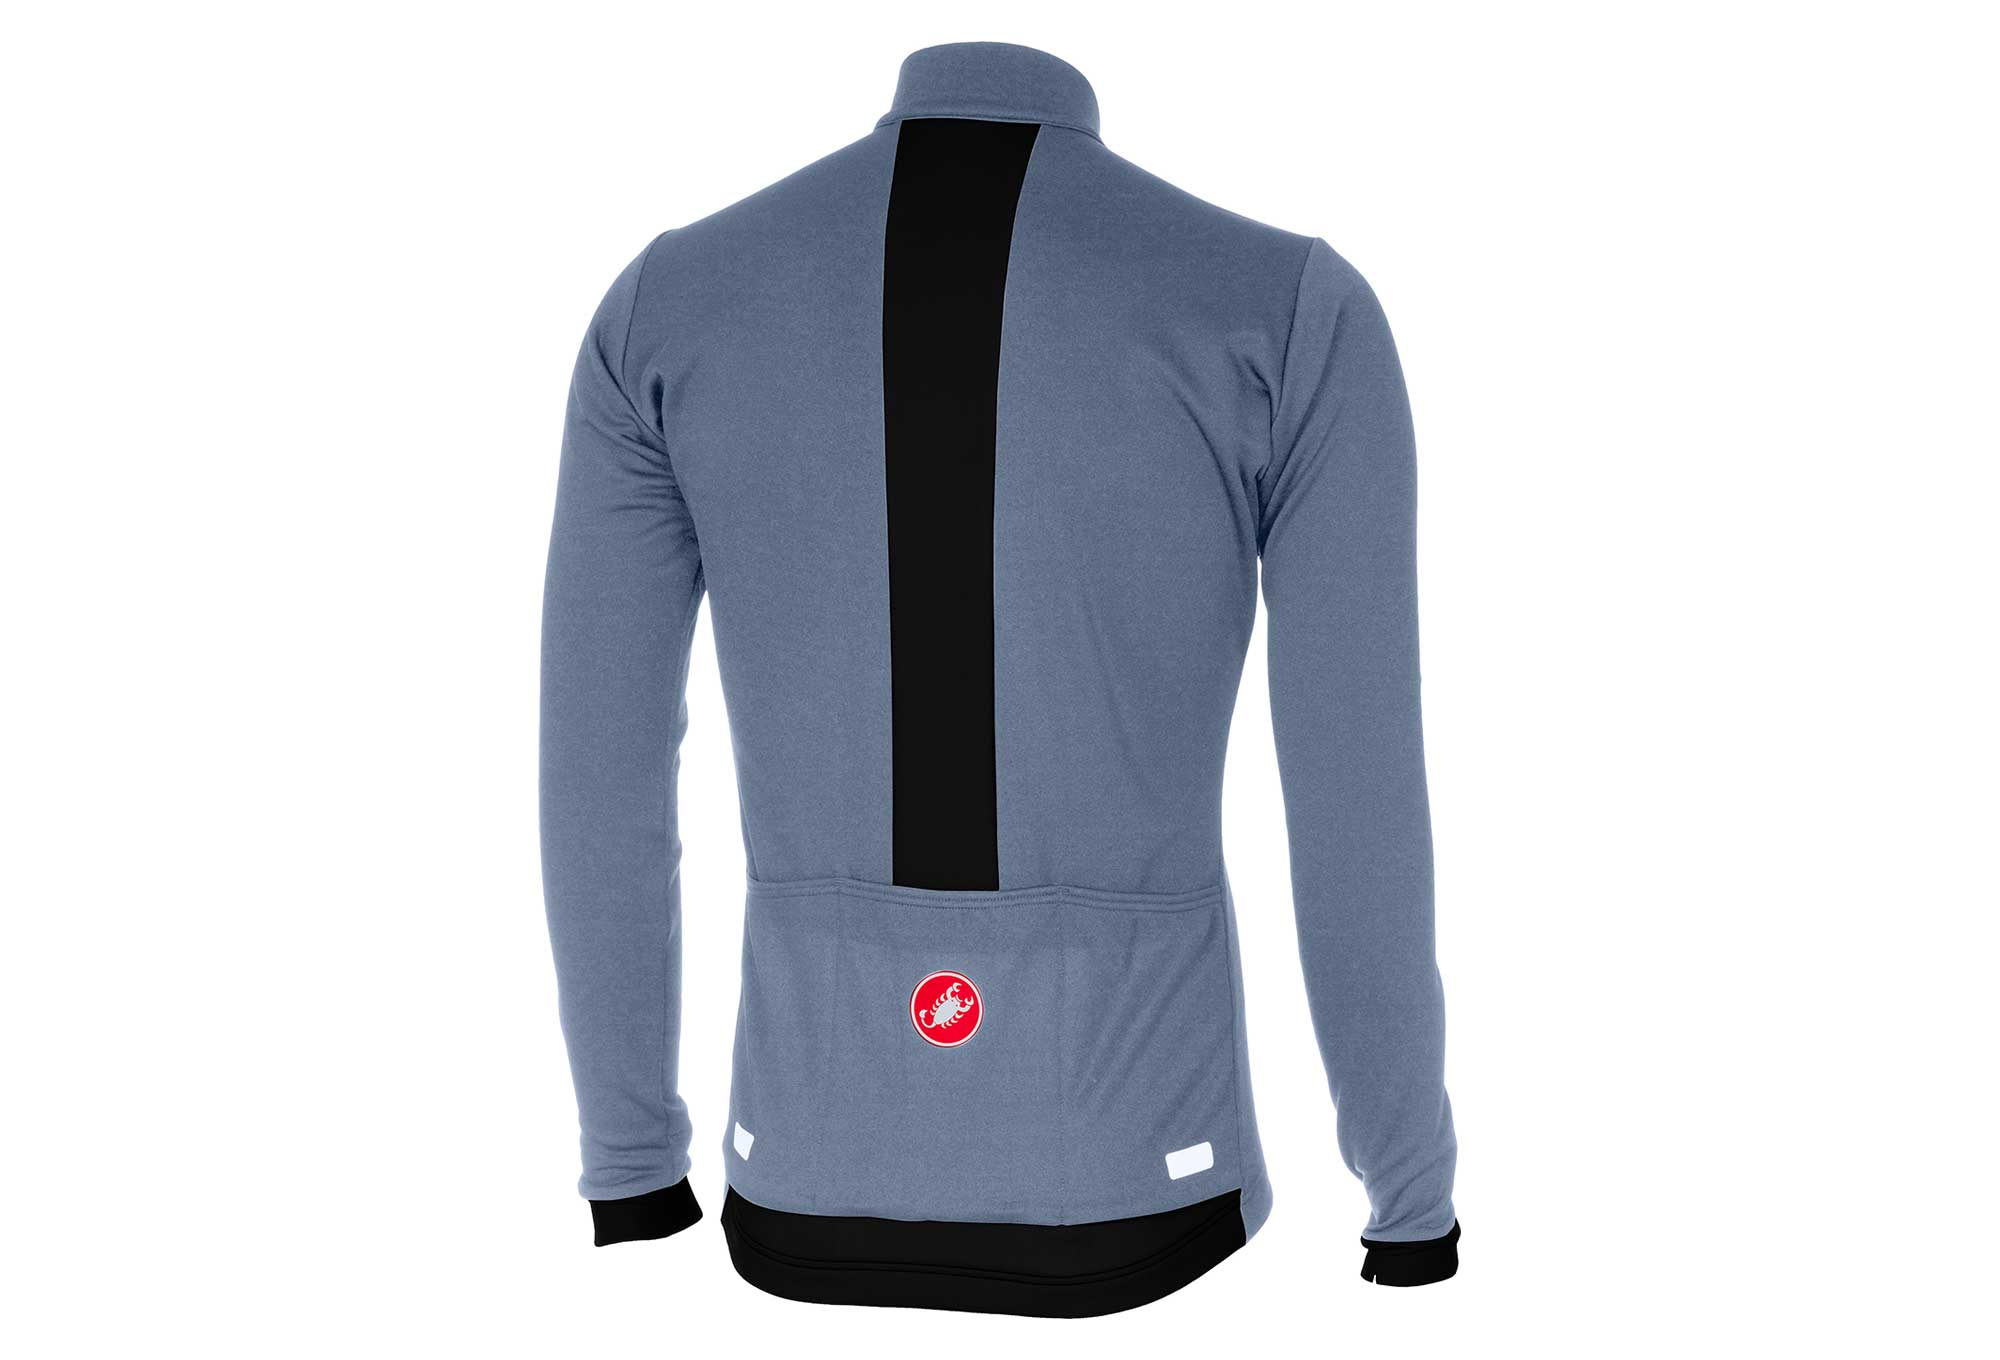 Castelli Fondo Long Sleeves Jersey Moonlight Blue Black  a4f97e95b